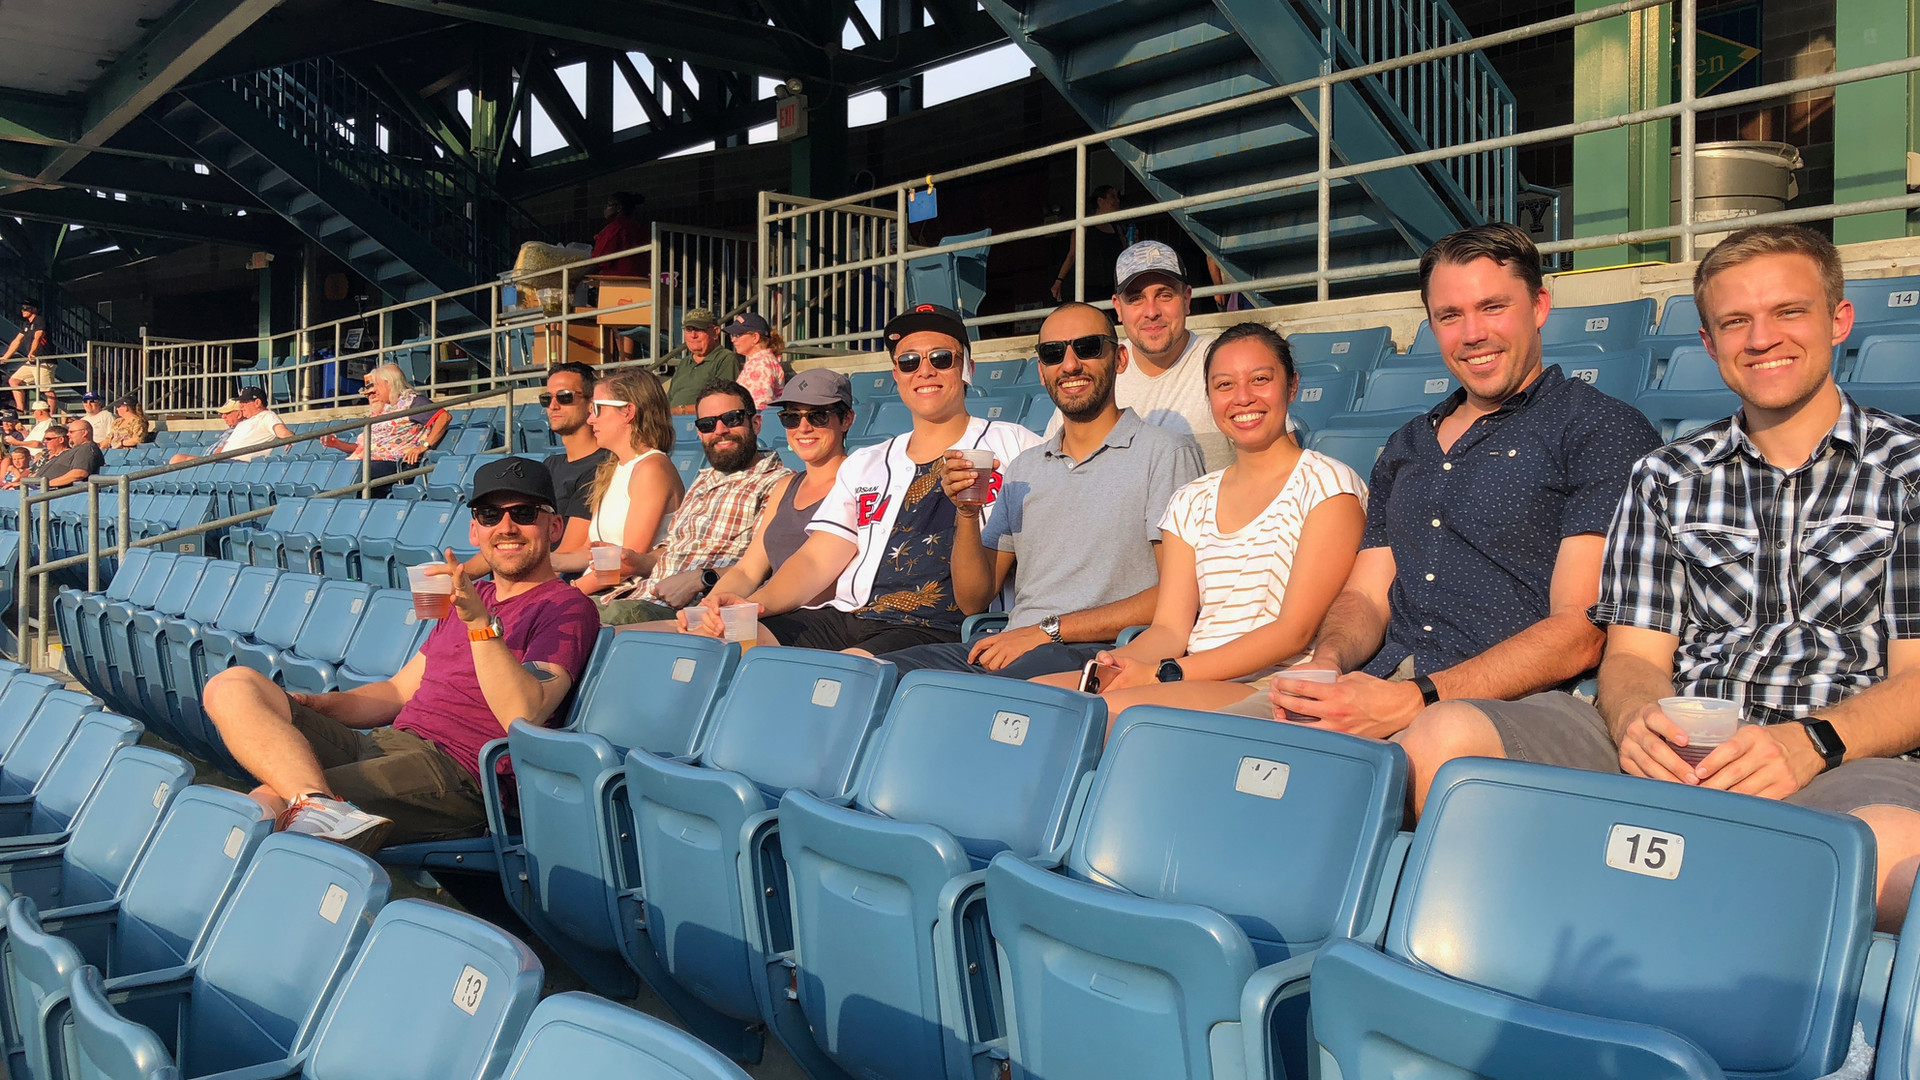 Class of 2021 at the Chiefs baseball game